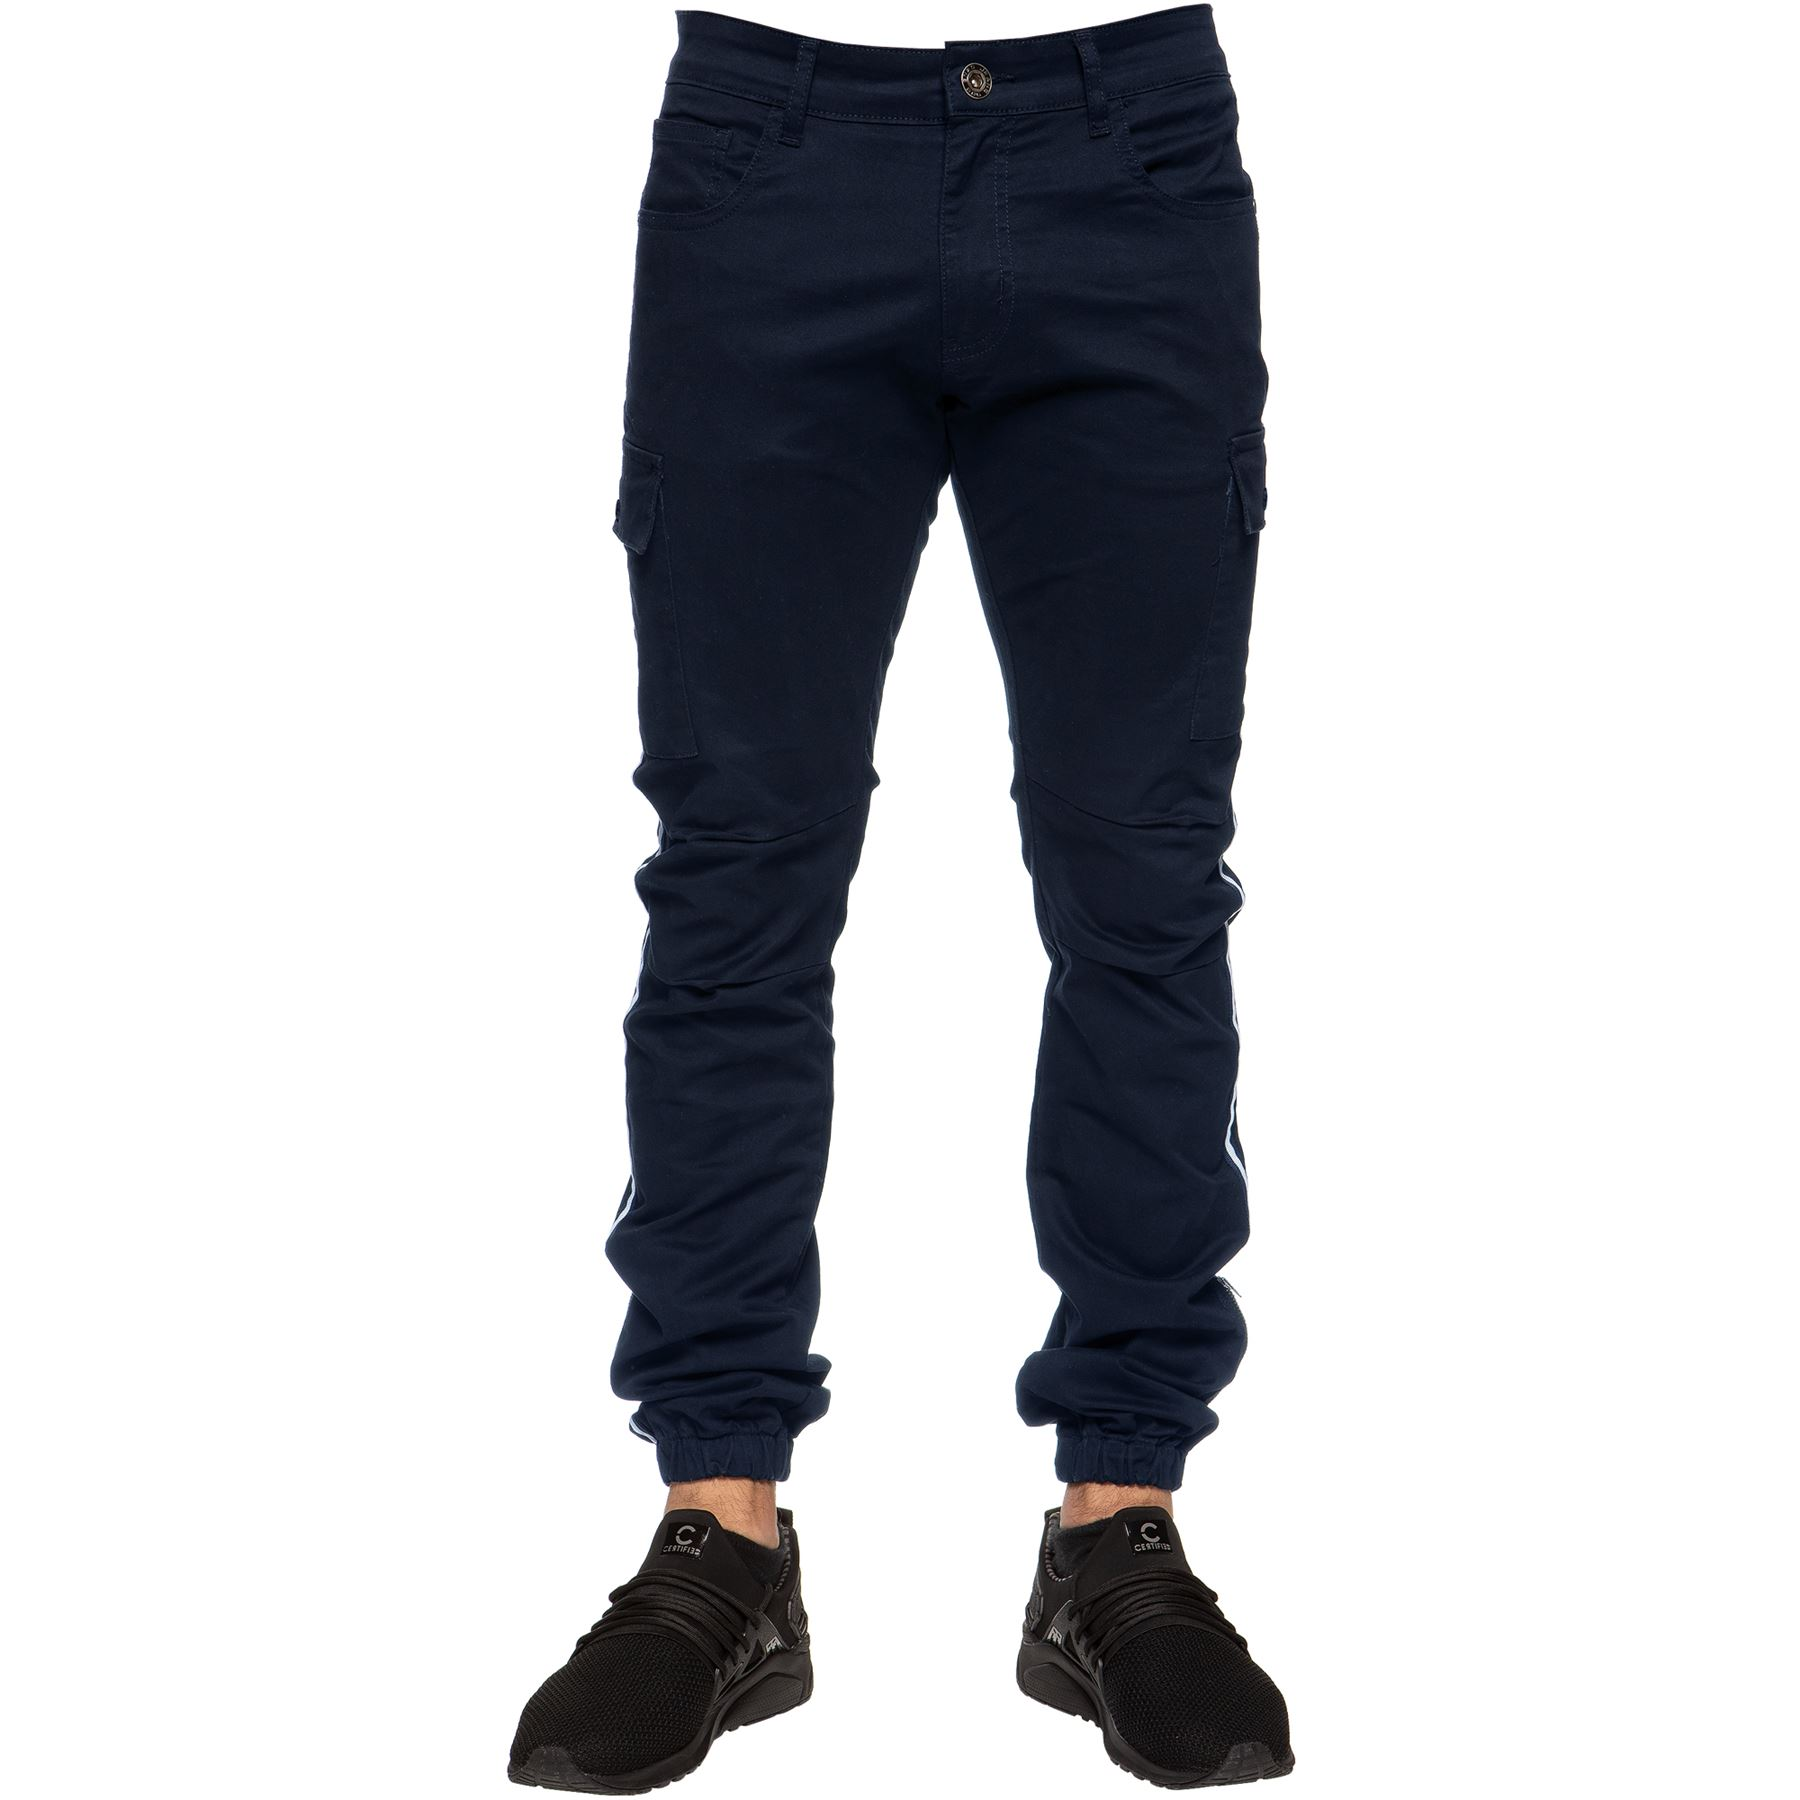 Enzo-Jeans-Mens-Combat-Trousers-Cargo-Chinos-Slim-Stretch-Cuffed-Joggers-Pants thumbnail 9